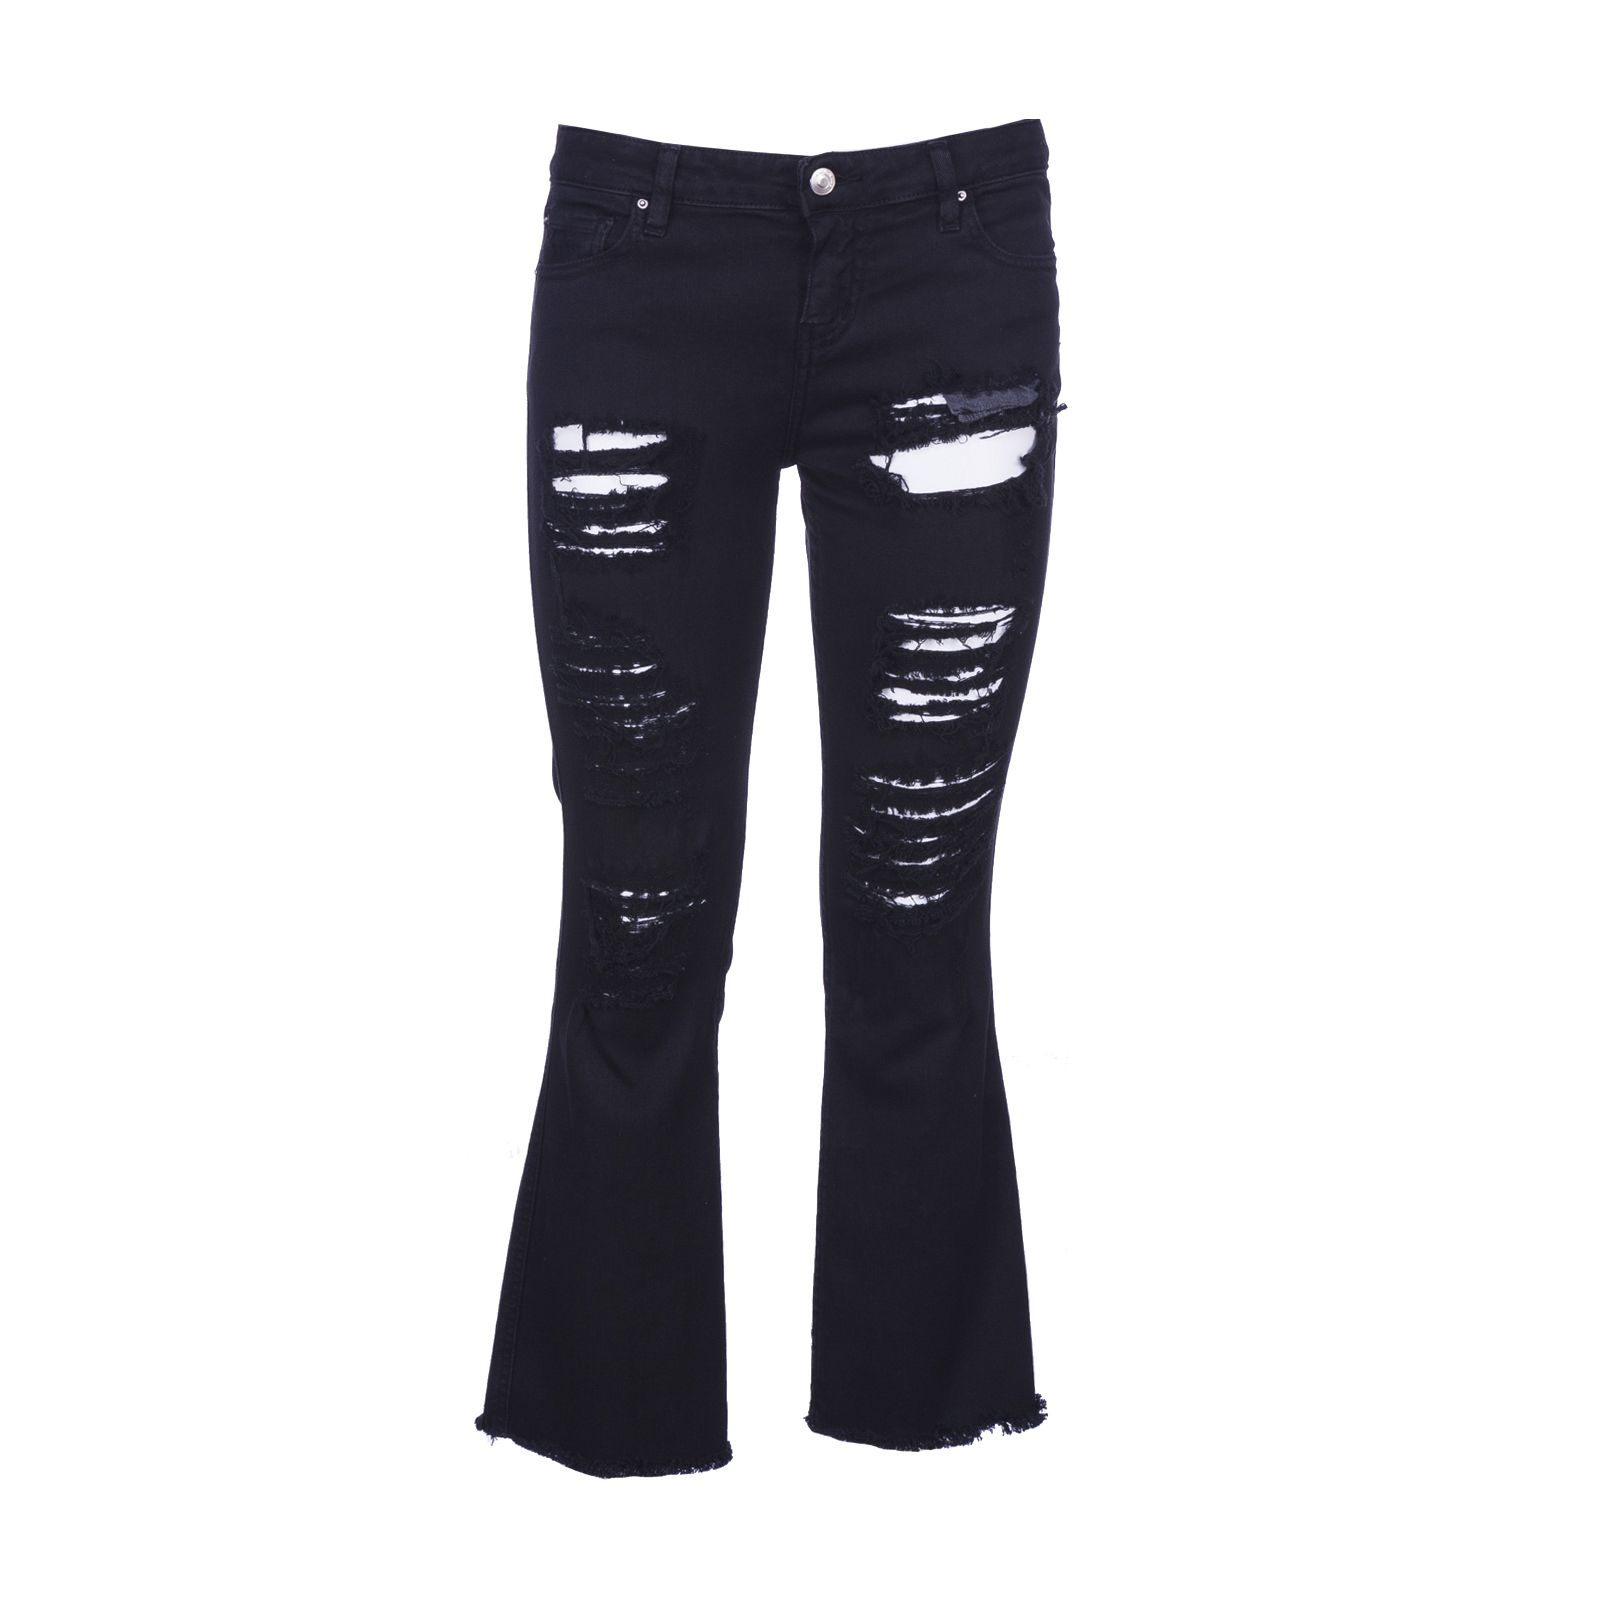 Ripped Cropped Jeans From Iro